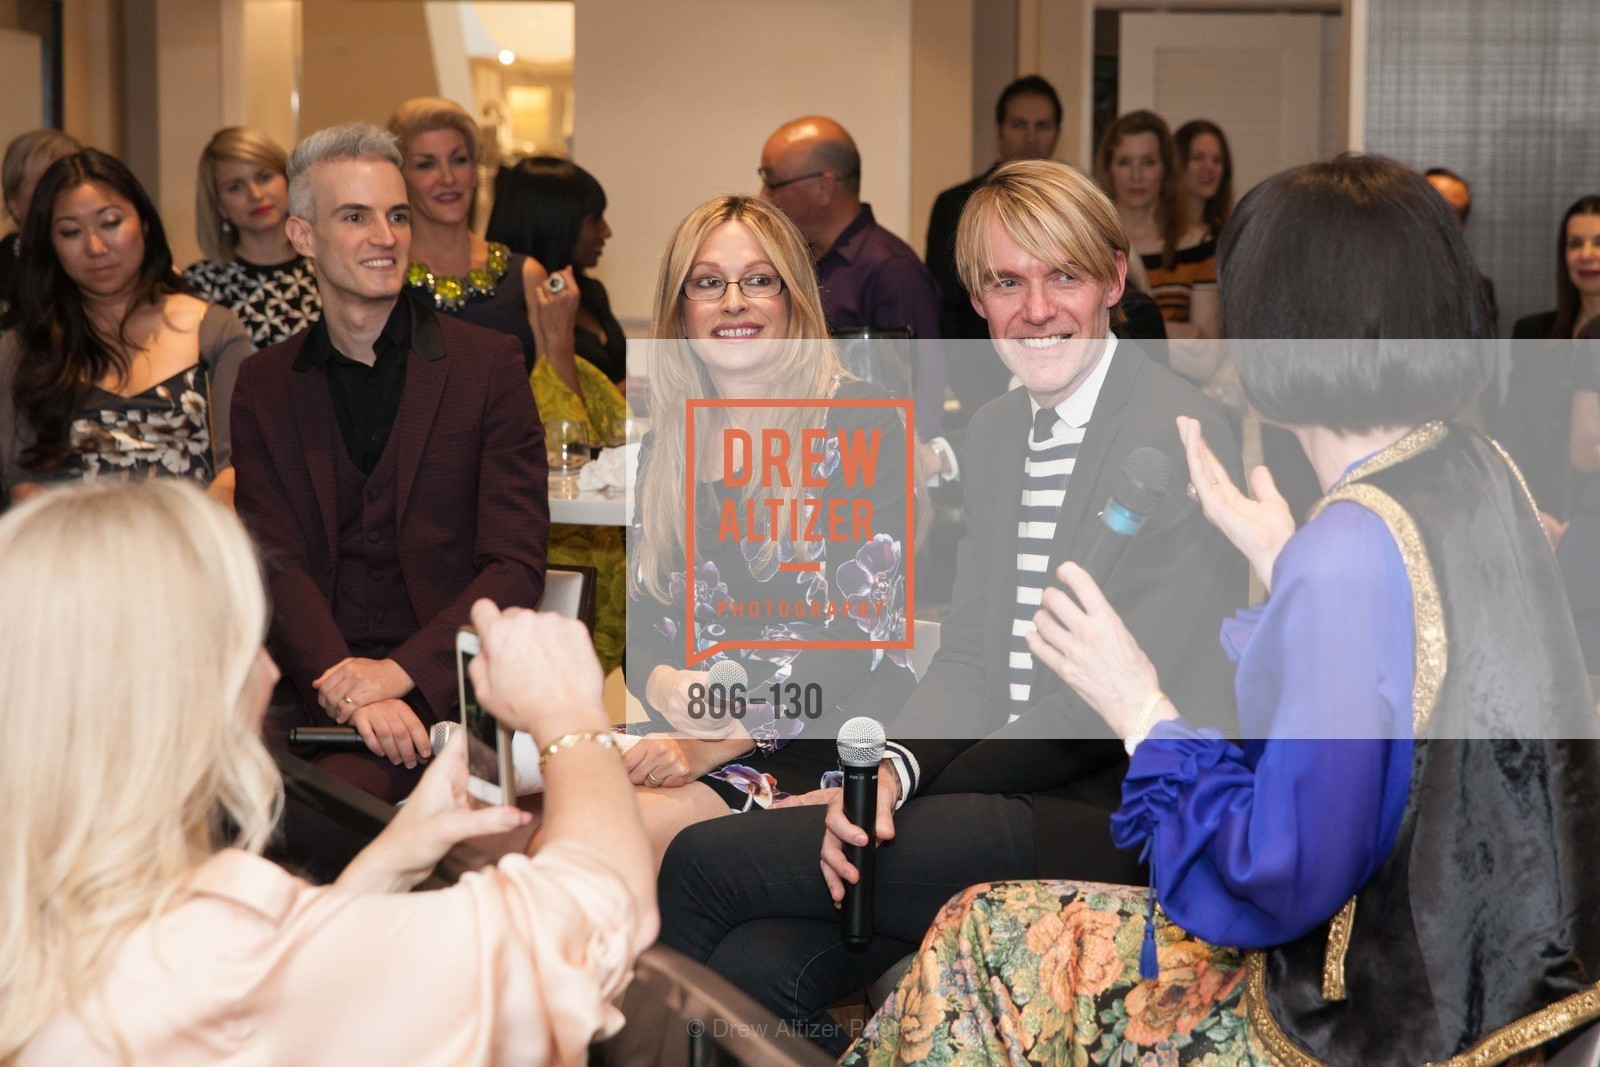 Frederic Aranda, Carolyne Zinko, Ken Downing, Electric Fashion Book Signing with Christine Suppes & Ken Downing, Neiman Marcus, Rotunda, May 26th, 2015,Drew Altizer, Drew Altizer Photography, full-service agency, private events, San Francisco photographer, photographer california